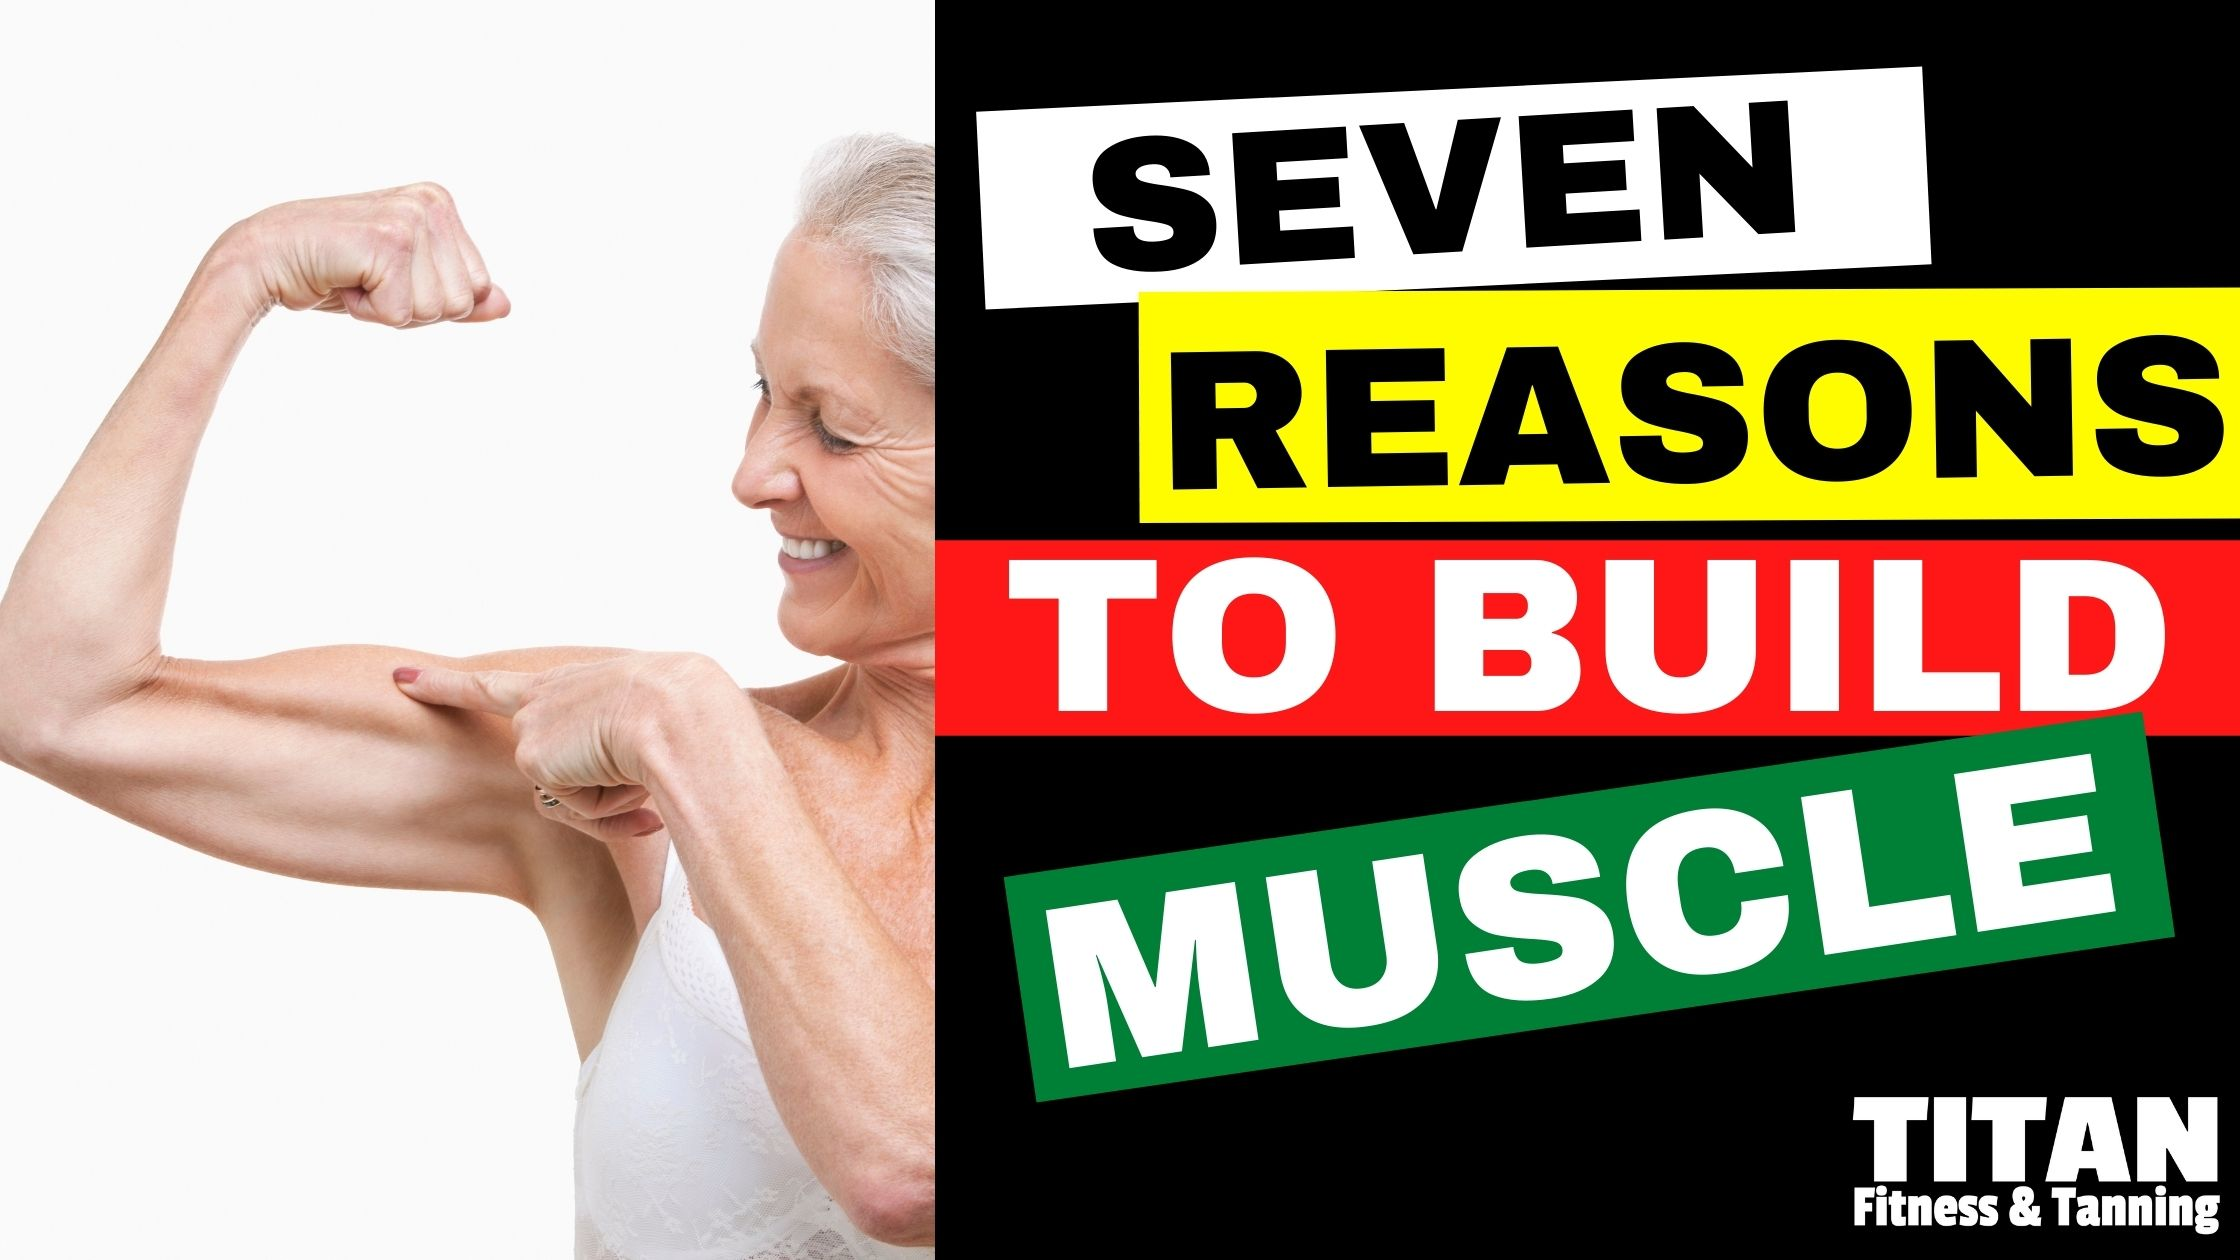 7 Reasons to Build Muscle